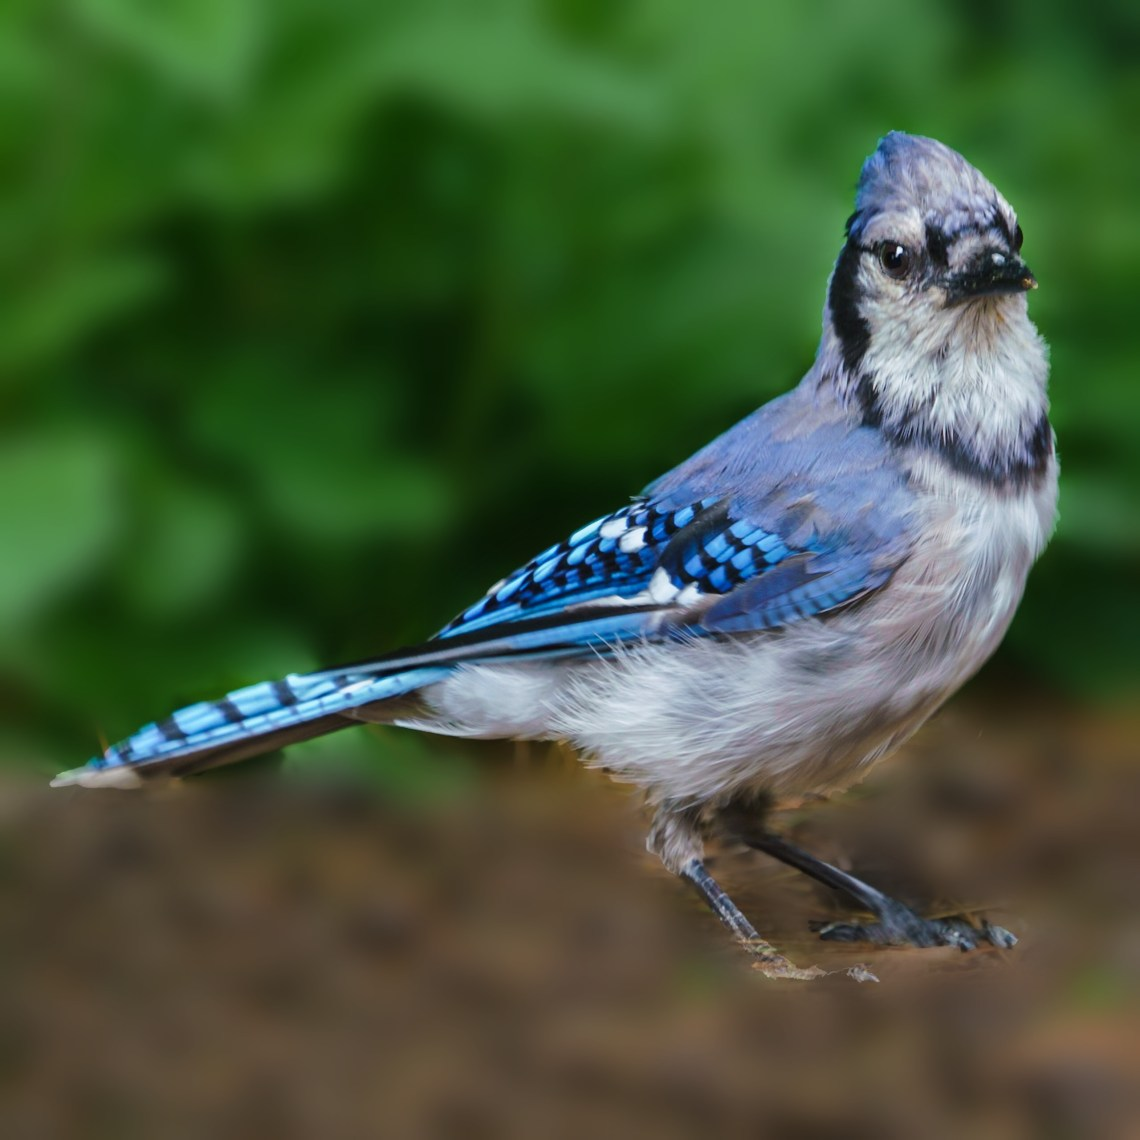 Buster the Blue Jay, #3 of 4